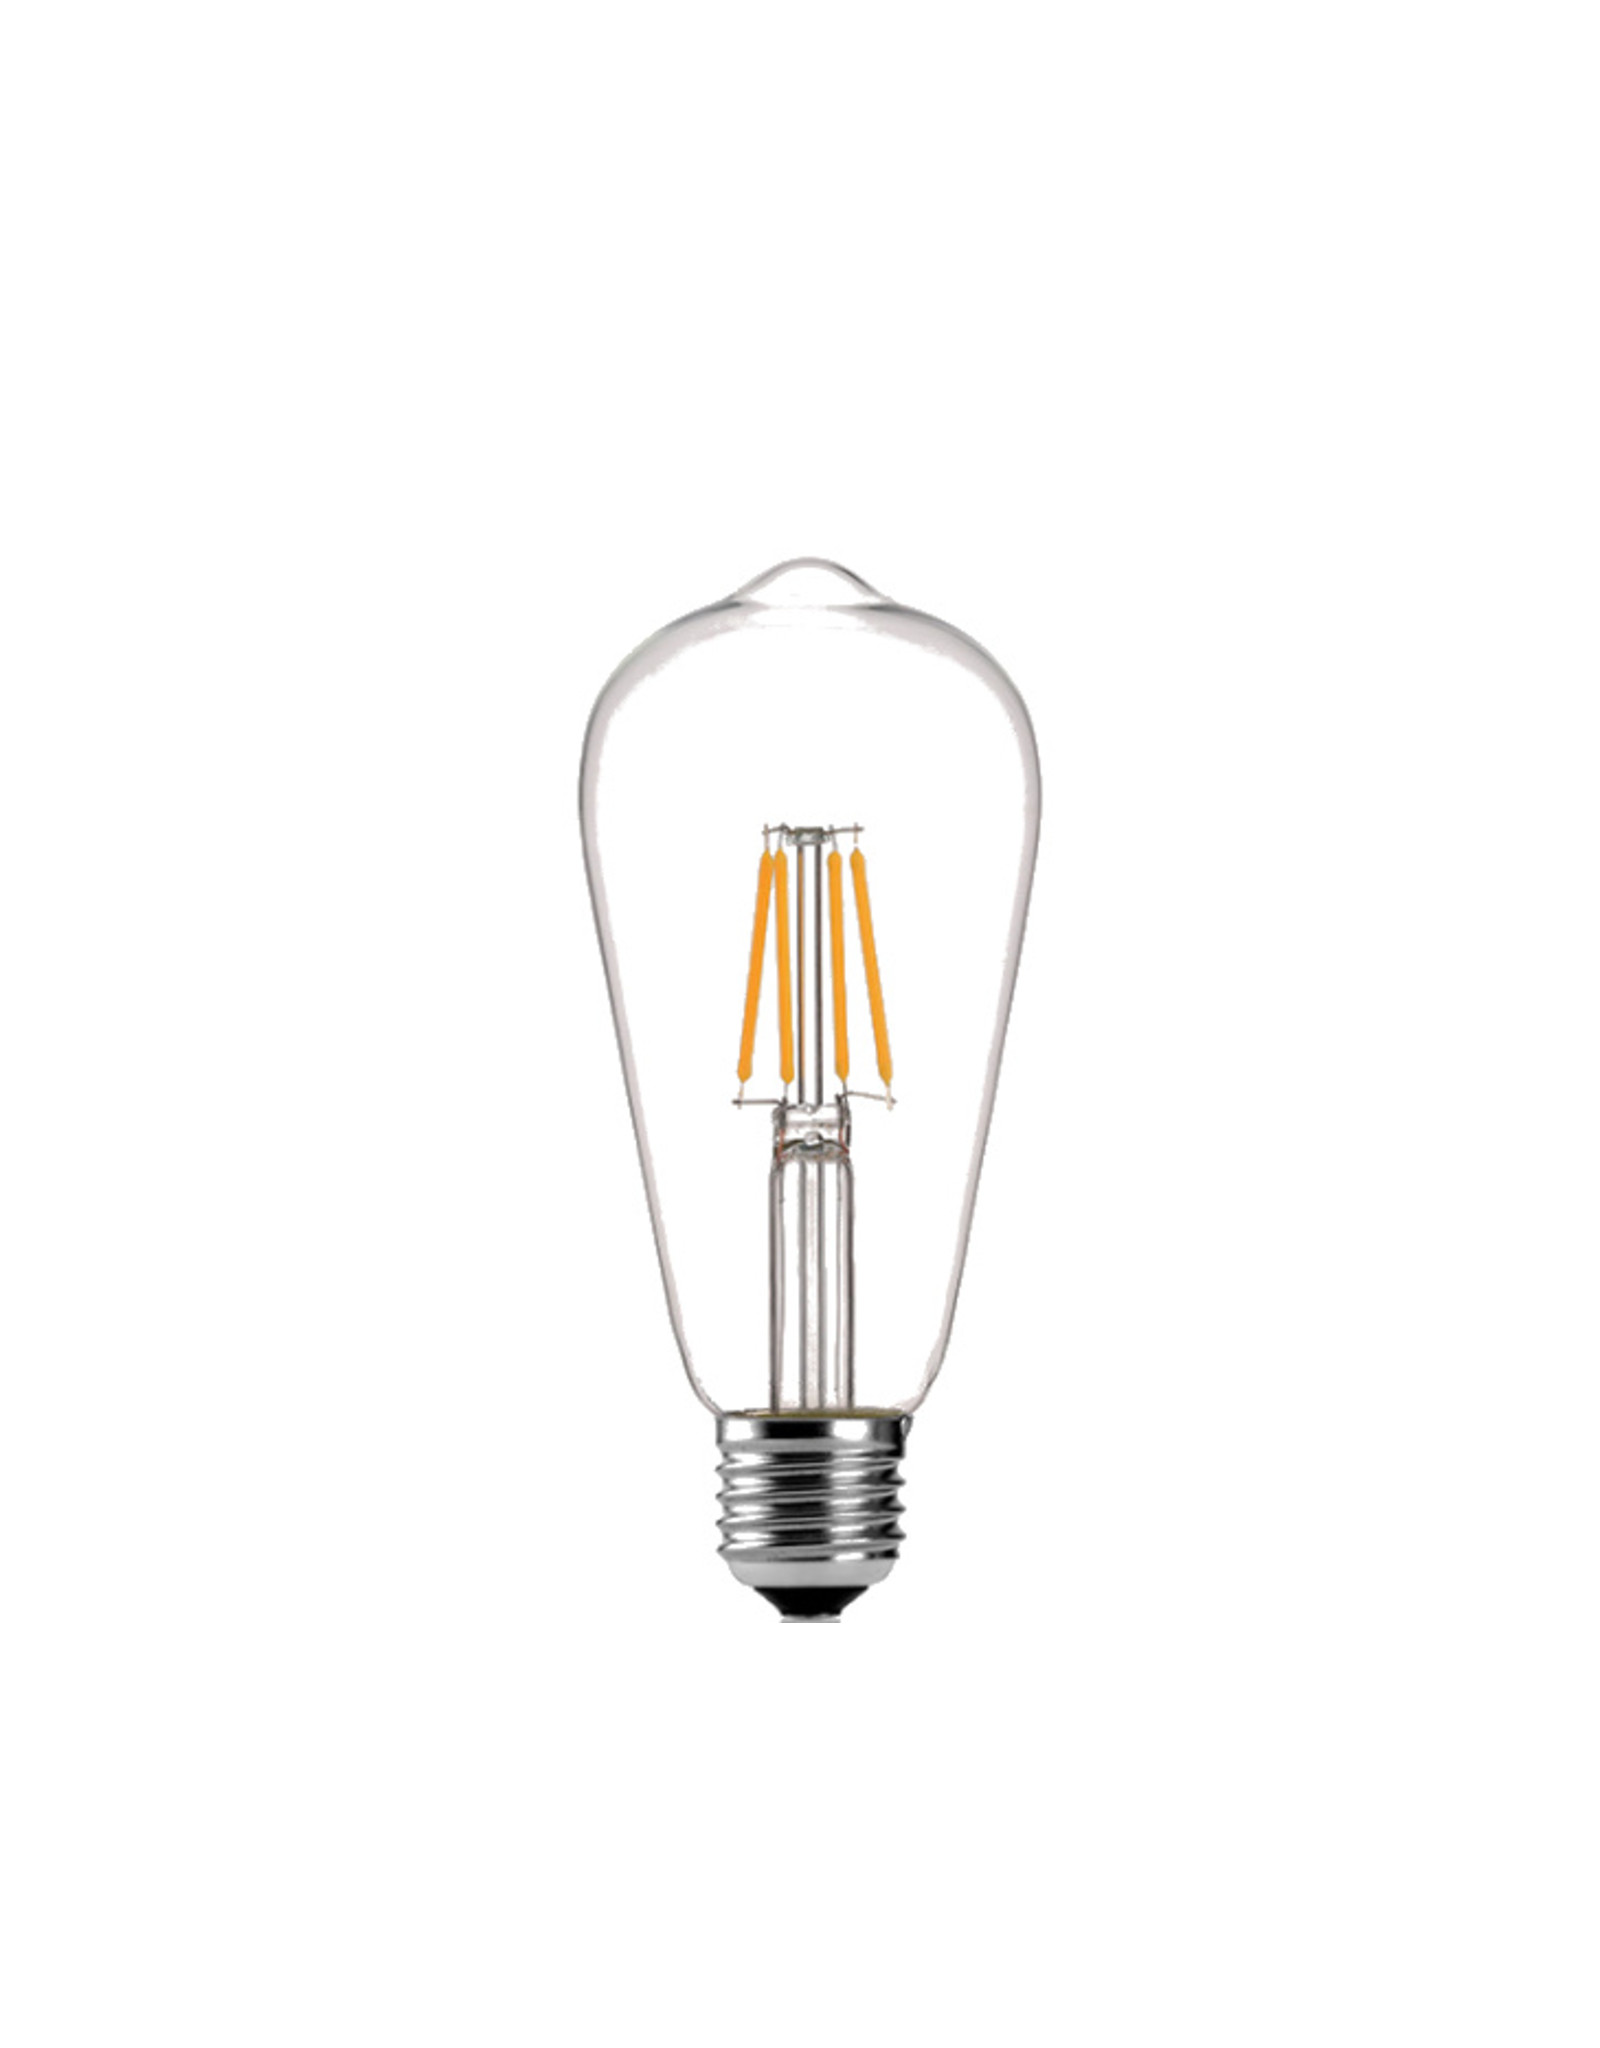 Lights ST64 - 4W - 2700K - E27 - CLEAR - 220V - DIMMABLE